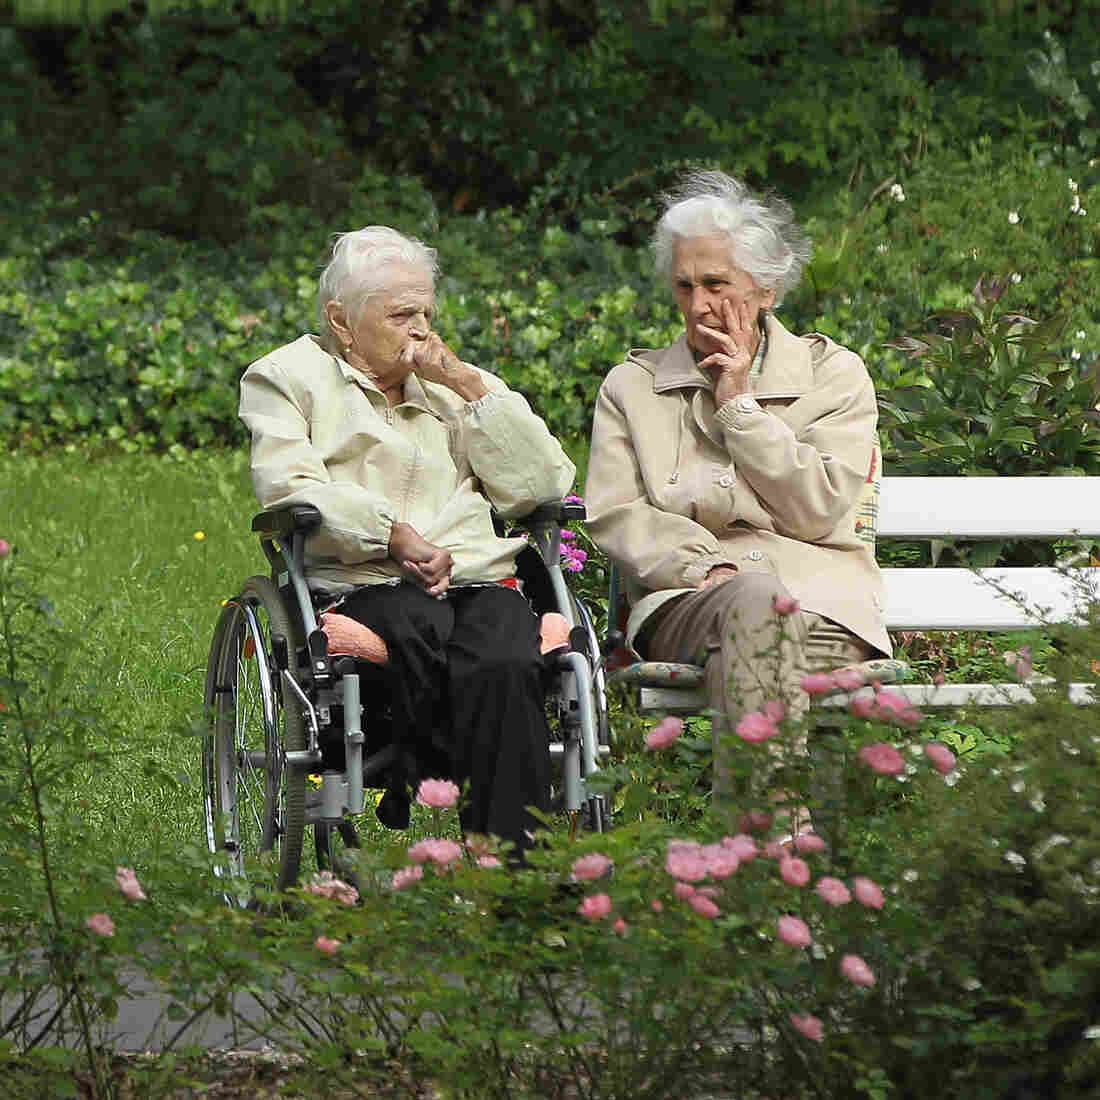 """Two German women chat in the gardens of a senior care home in Berlin. Germany is grappling with a rapidly aging population: By 2050, almost a third of Germans will be 65 years or older, and a growing """"Grandma export"""" trend has set hands wringing."""